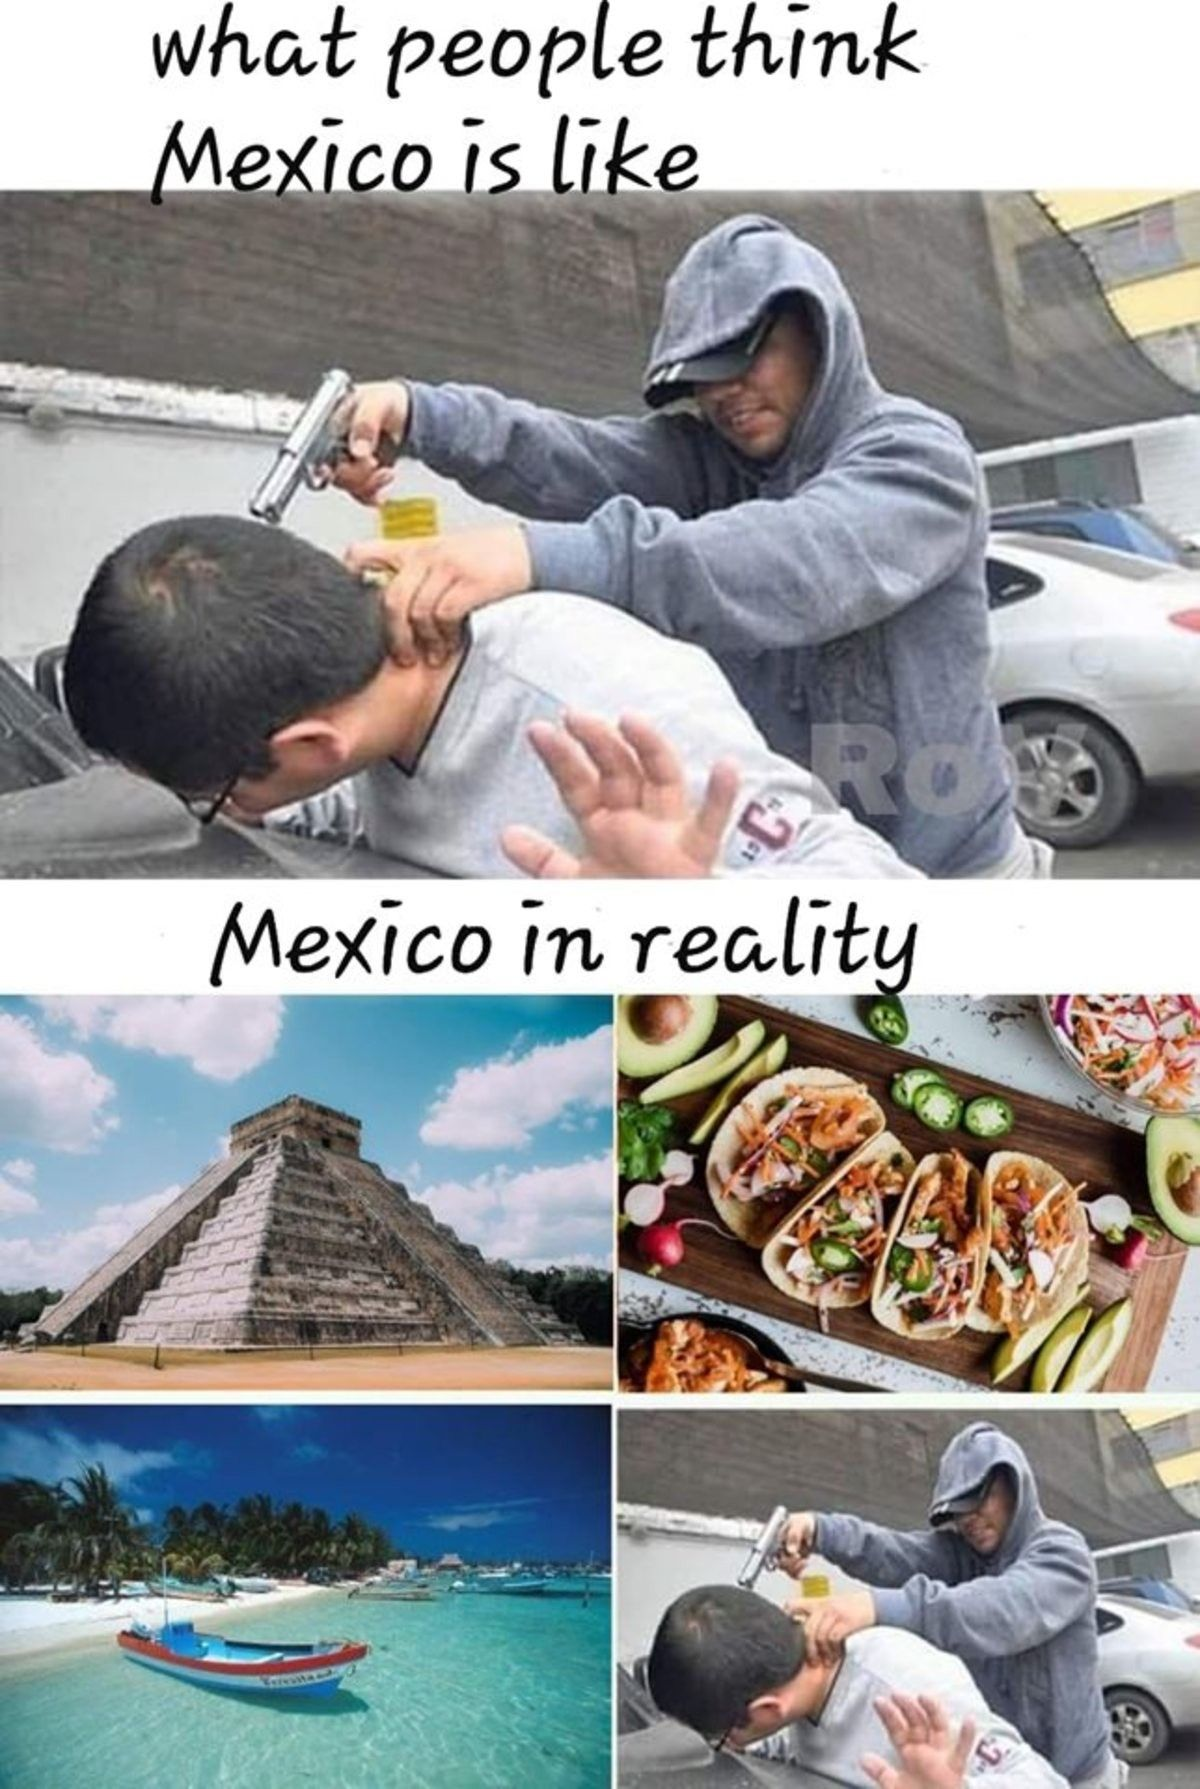 There's more to Mexico than just Mexico